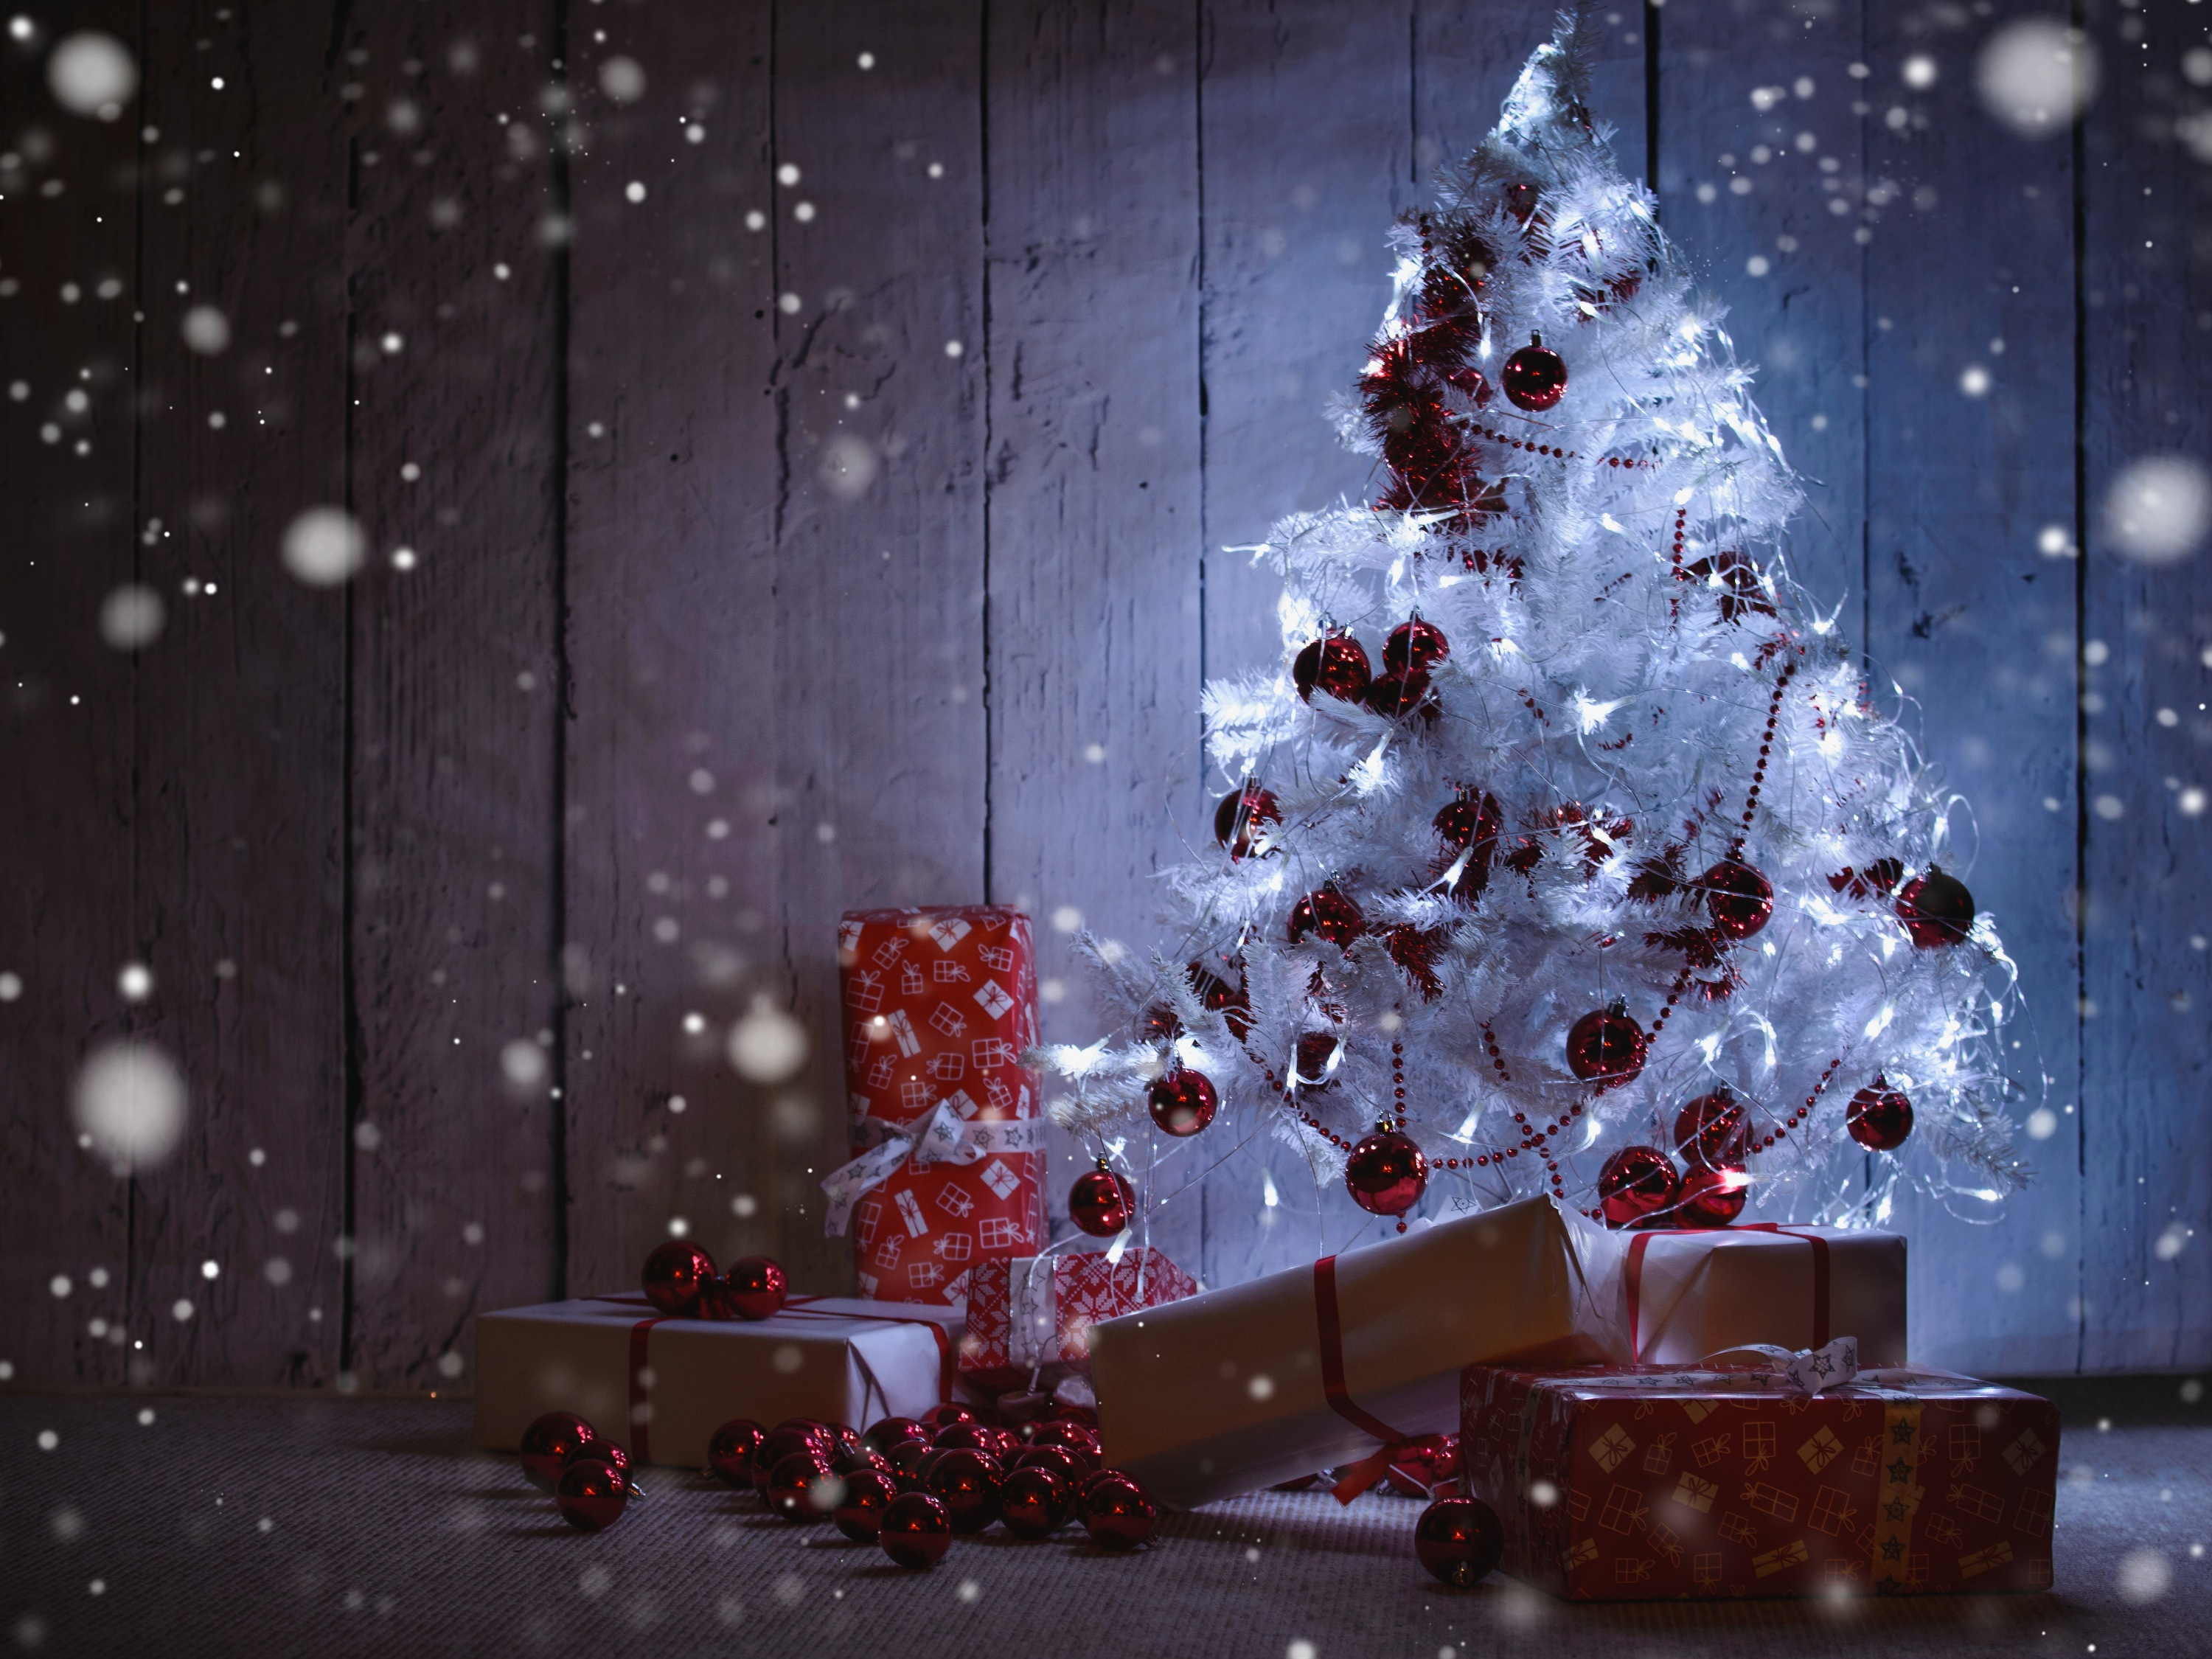 White Christmas Tree With Presents Under It Hd Wallpaper Background Image 3000x2250 Id 886670 Wallpaper Abyss